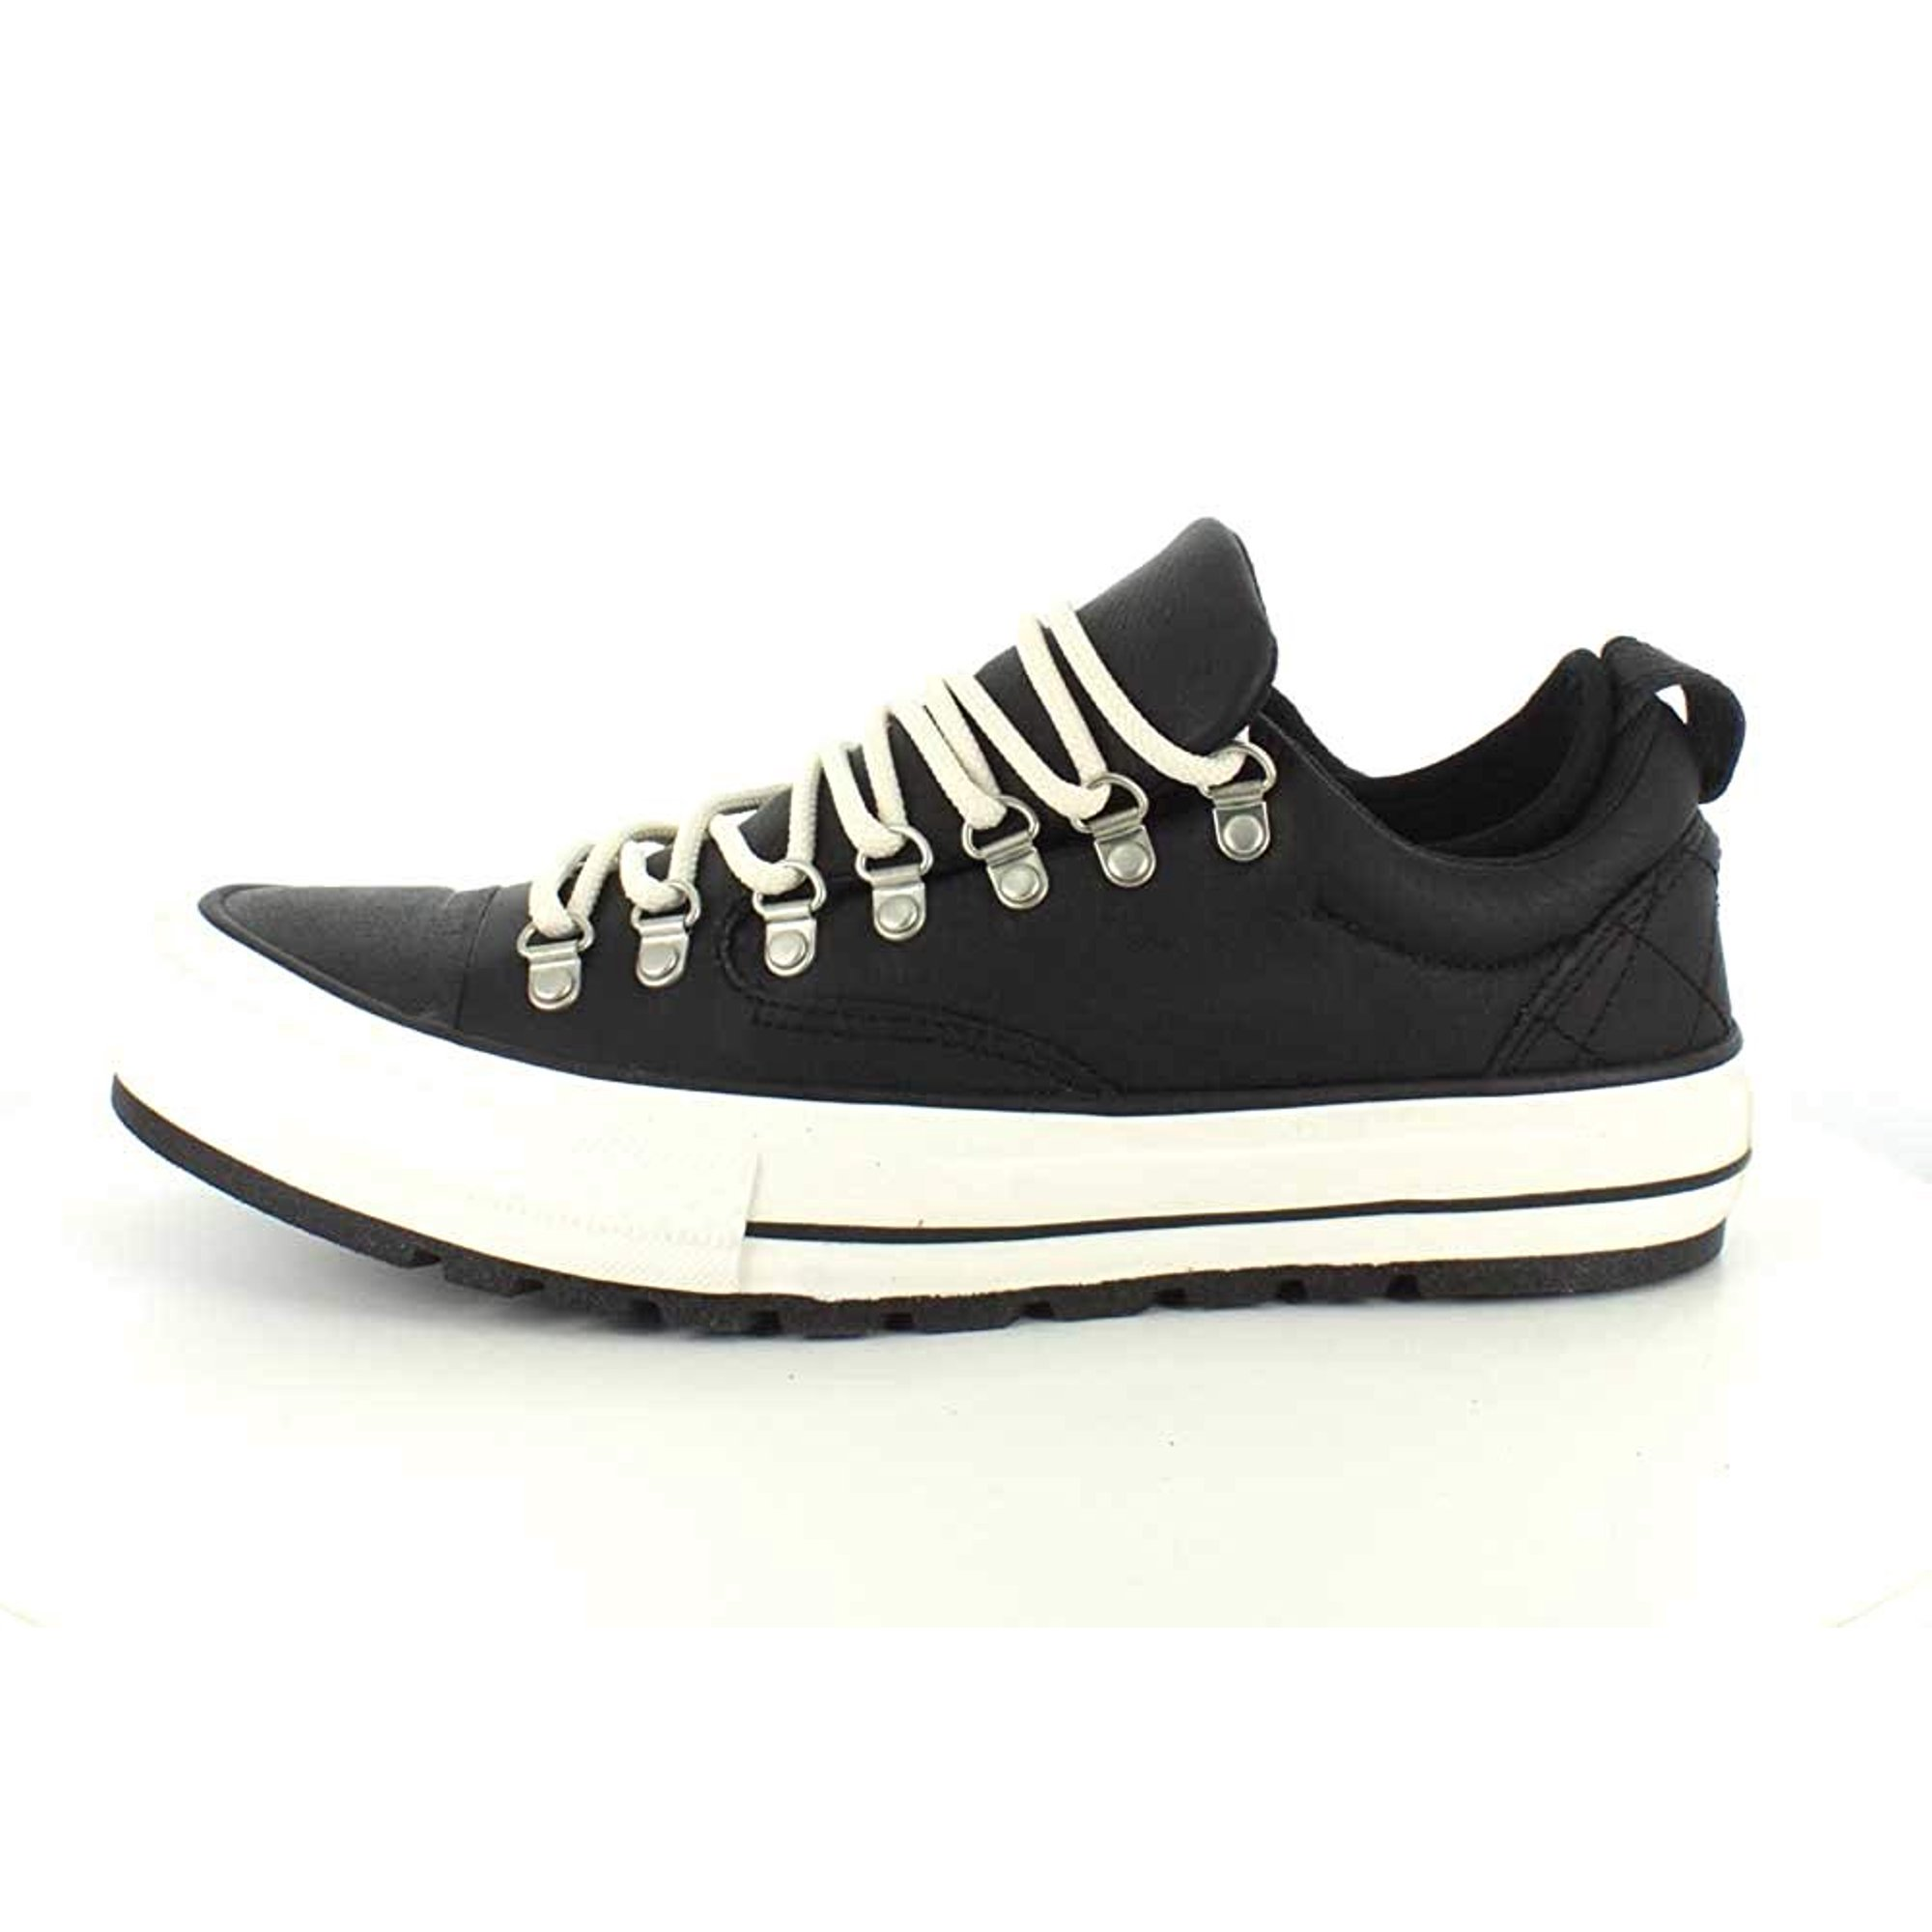 beed56a5b925 Converse Mens CTAS Descent Ox 153692C Leather Low